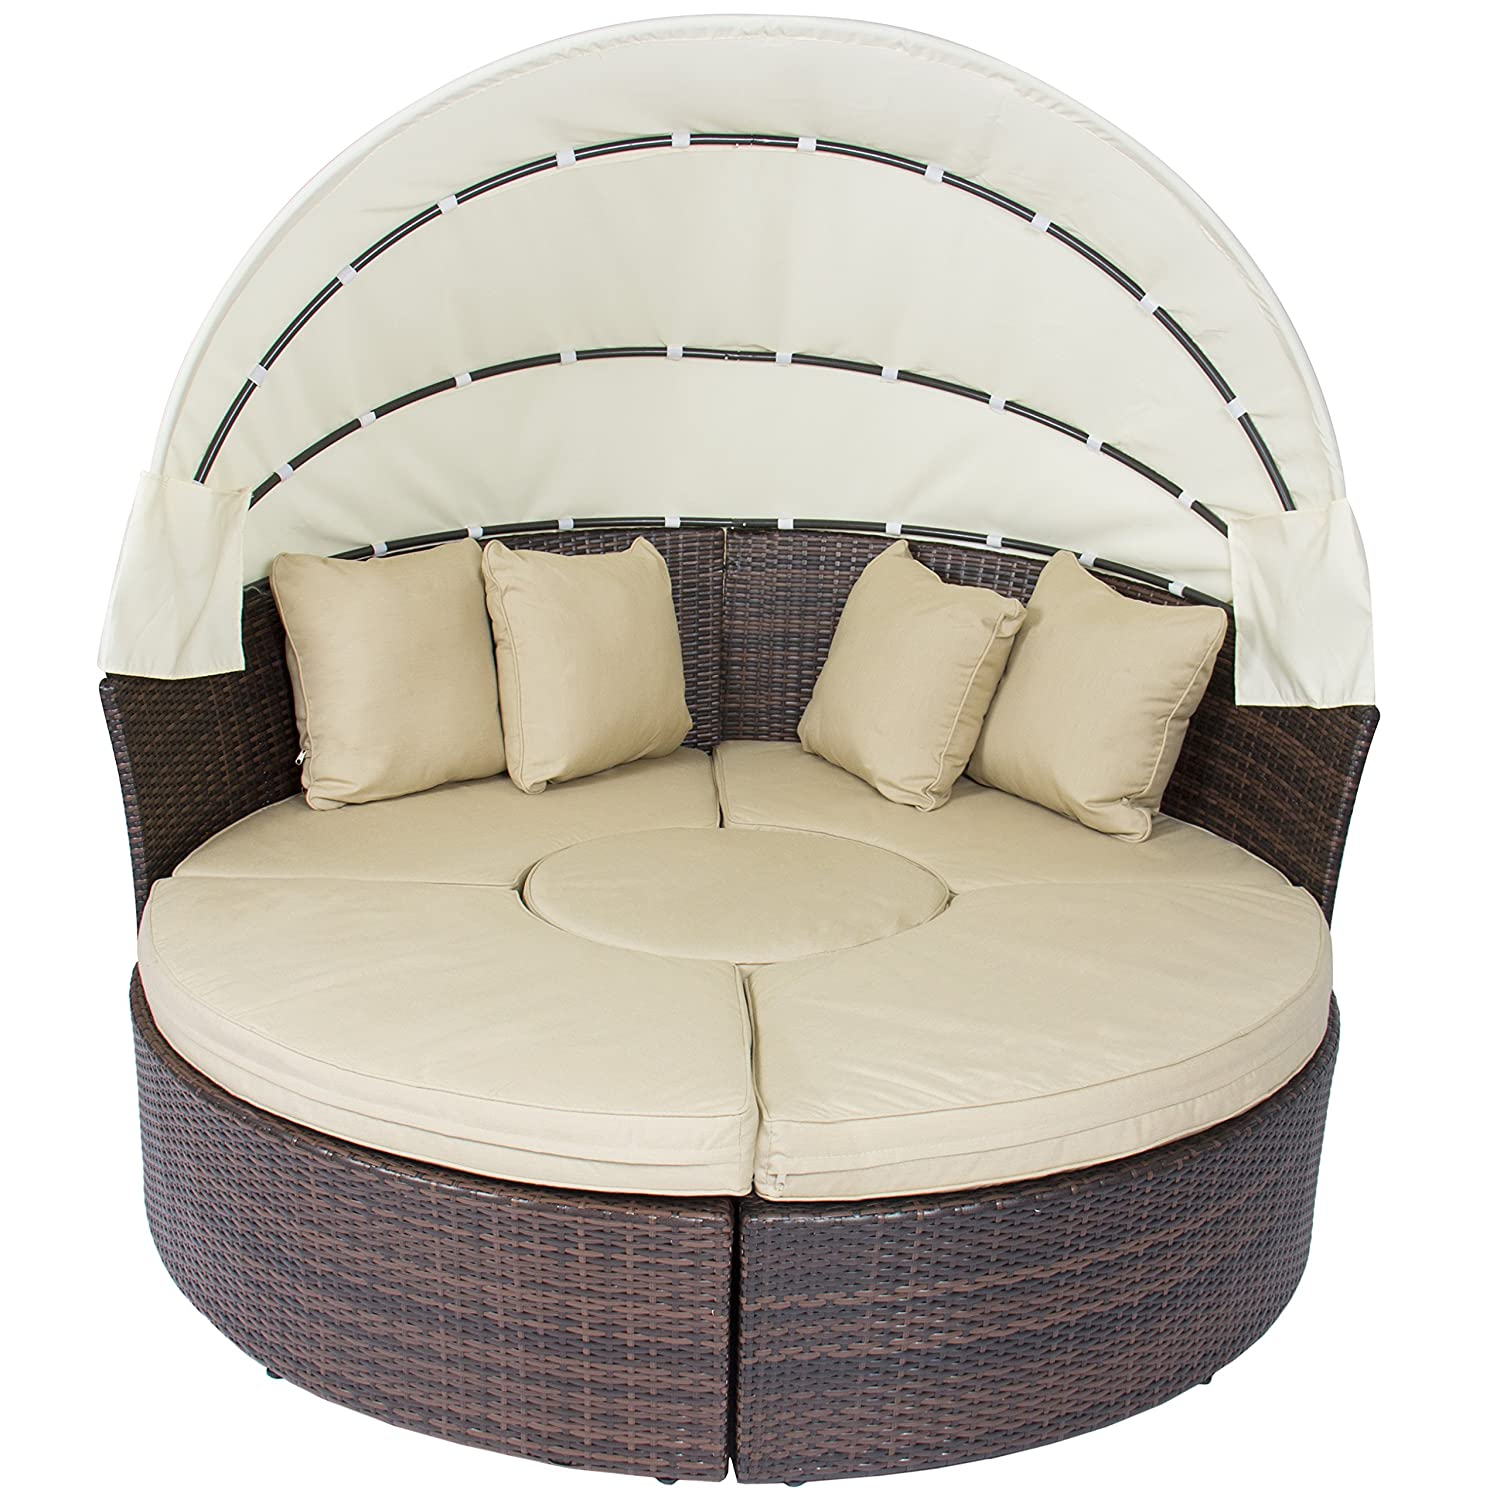 Amazon.com : Outdoor Patio Sofa Furniture Round Retractable Canopy Daybed  Brown Wicker Rattan : Garden U0026 Outdoor